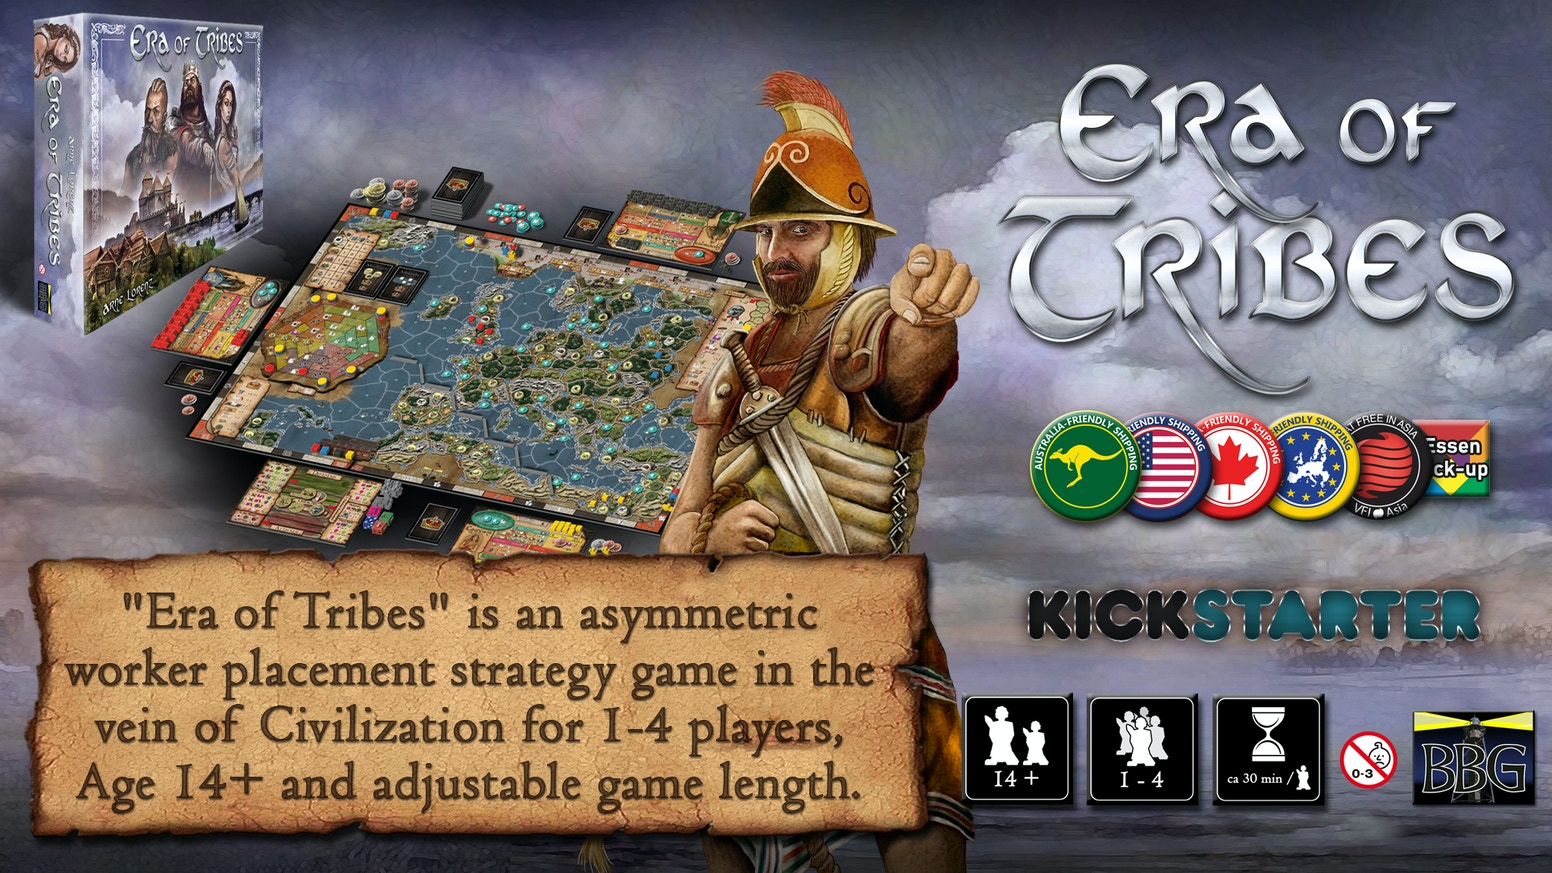 A new asymmetric 4 X worker placement strategy game about Civilizations for 1-4 players (14+ years). Develop, Expand, Discover & Interact!